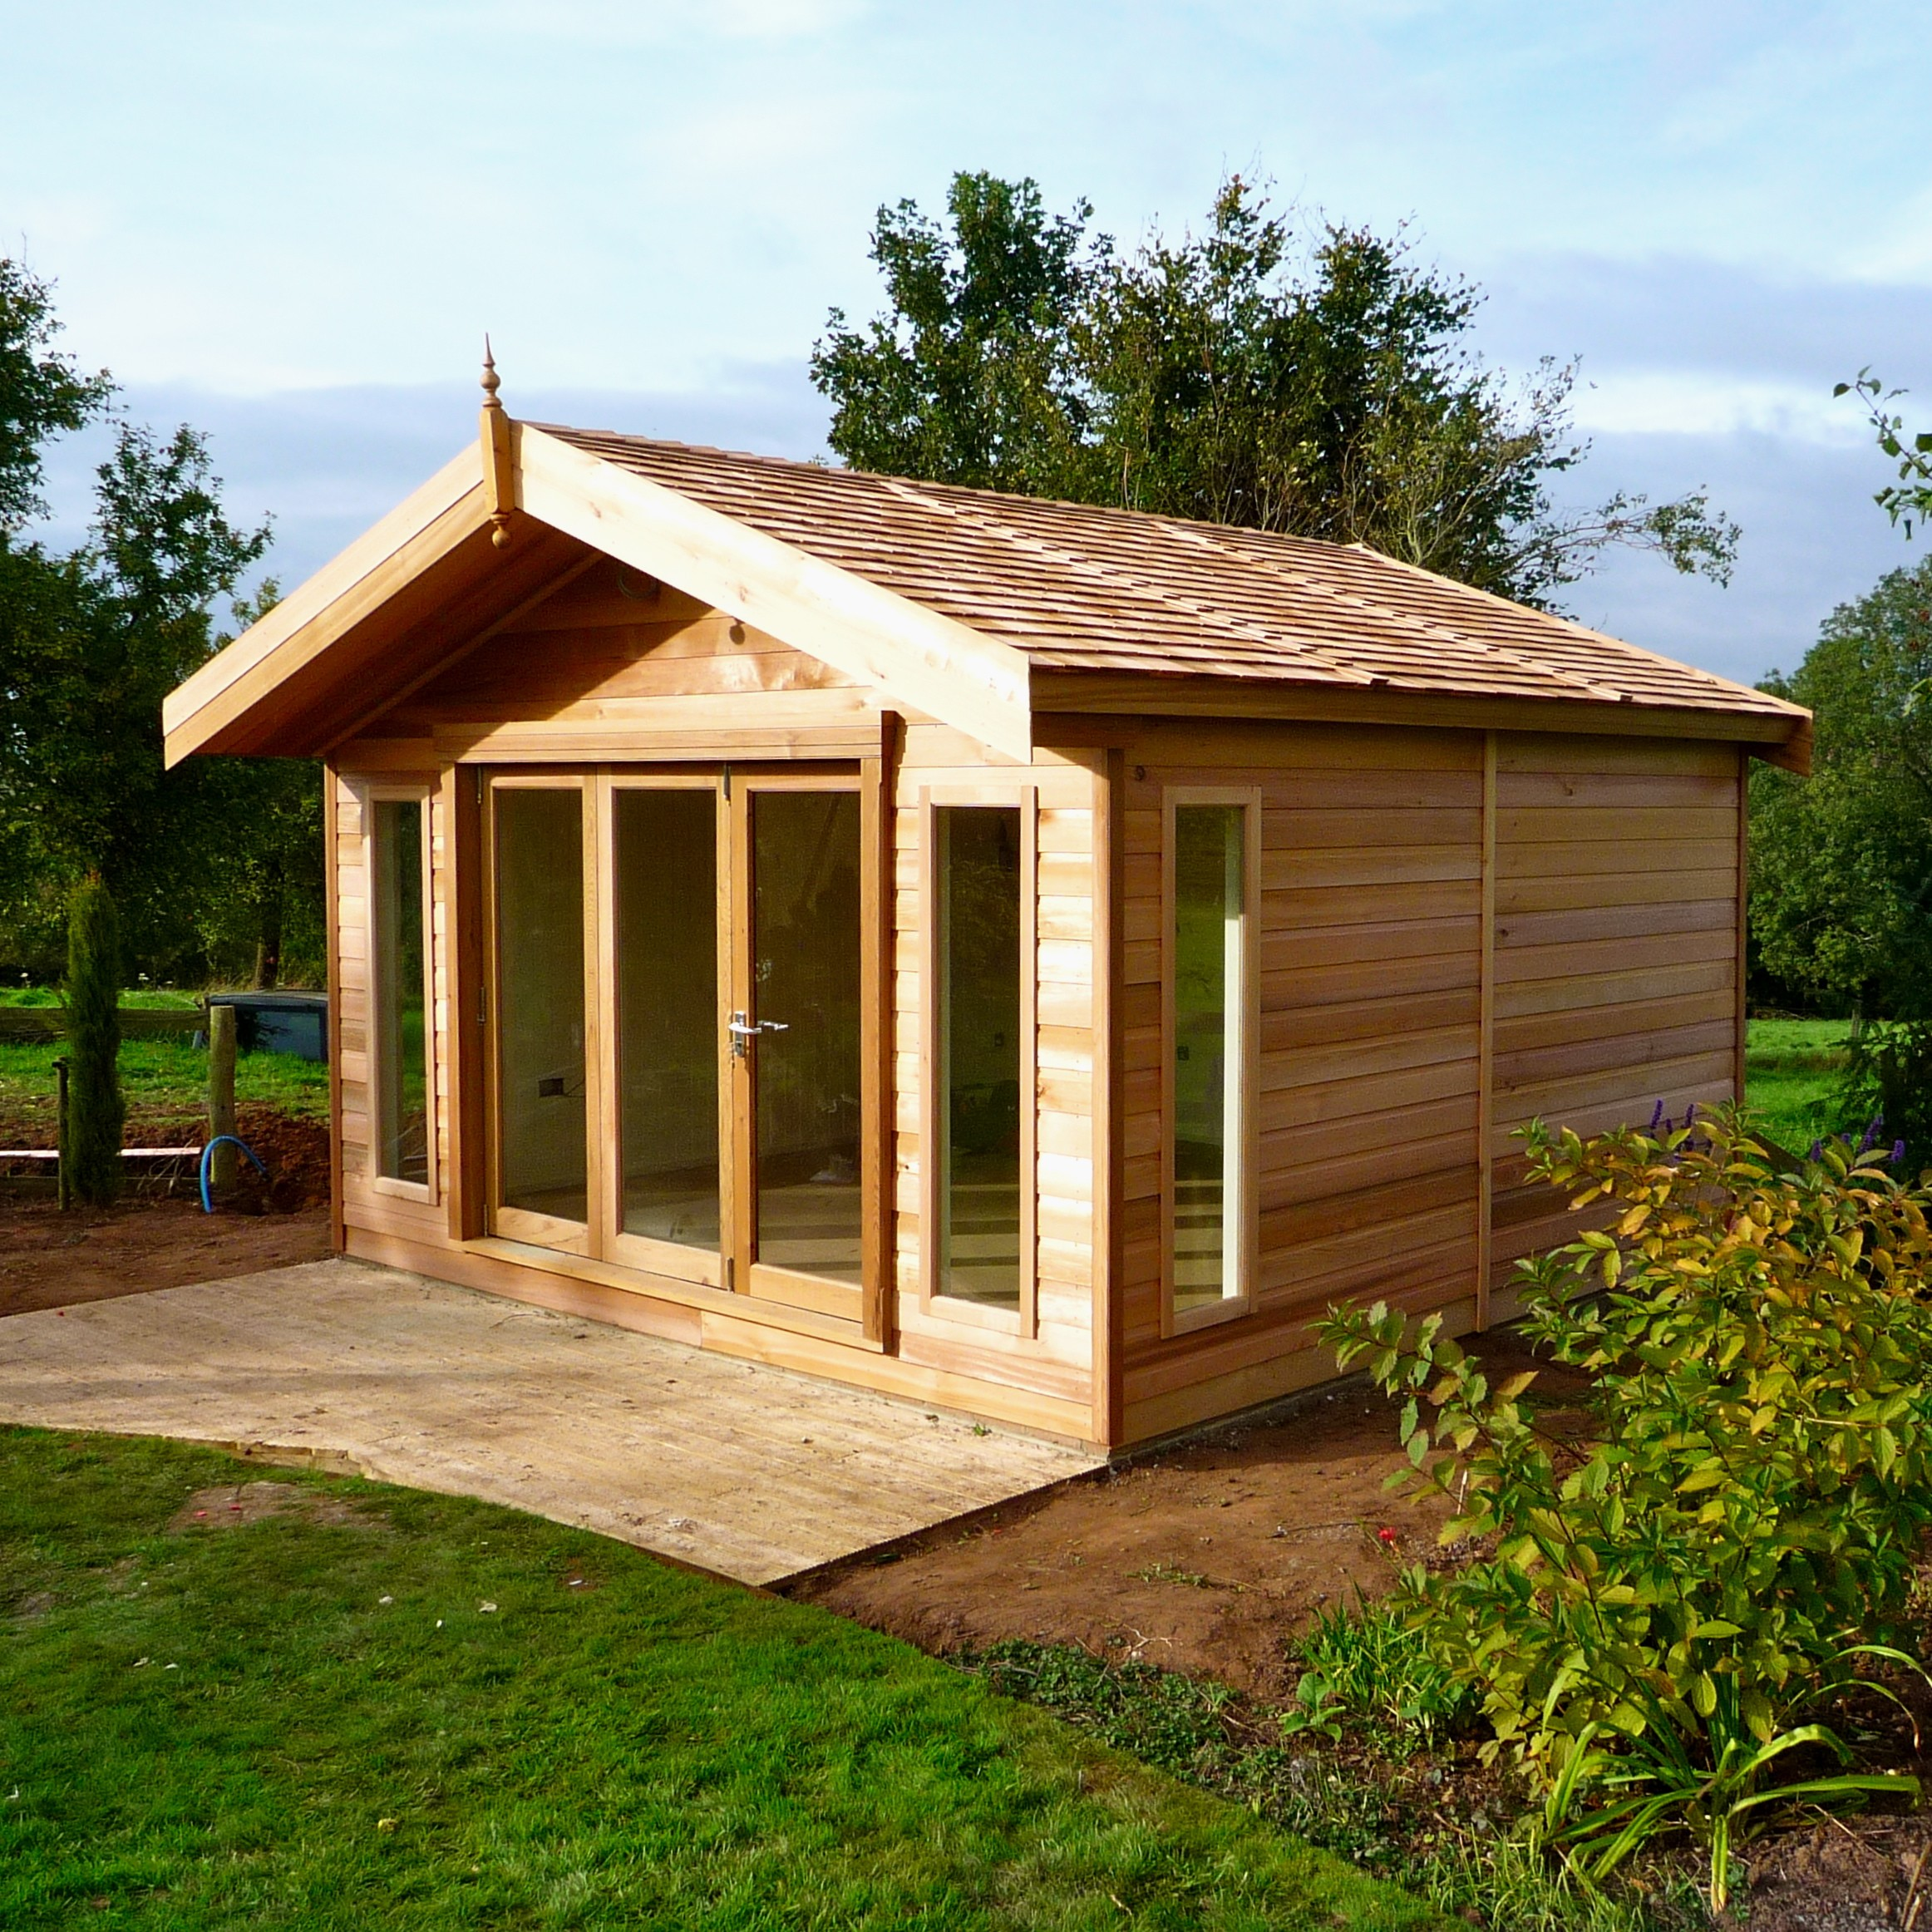 Garden Log Cabins For Sale UK, Summer Log Cabins